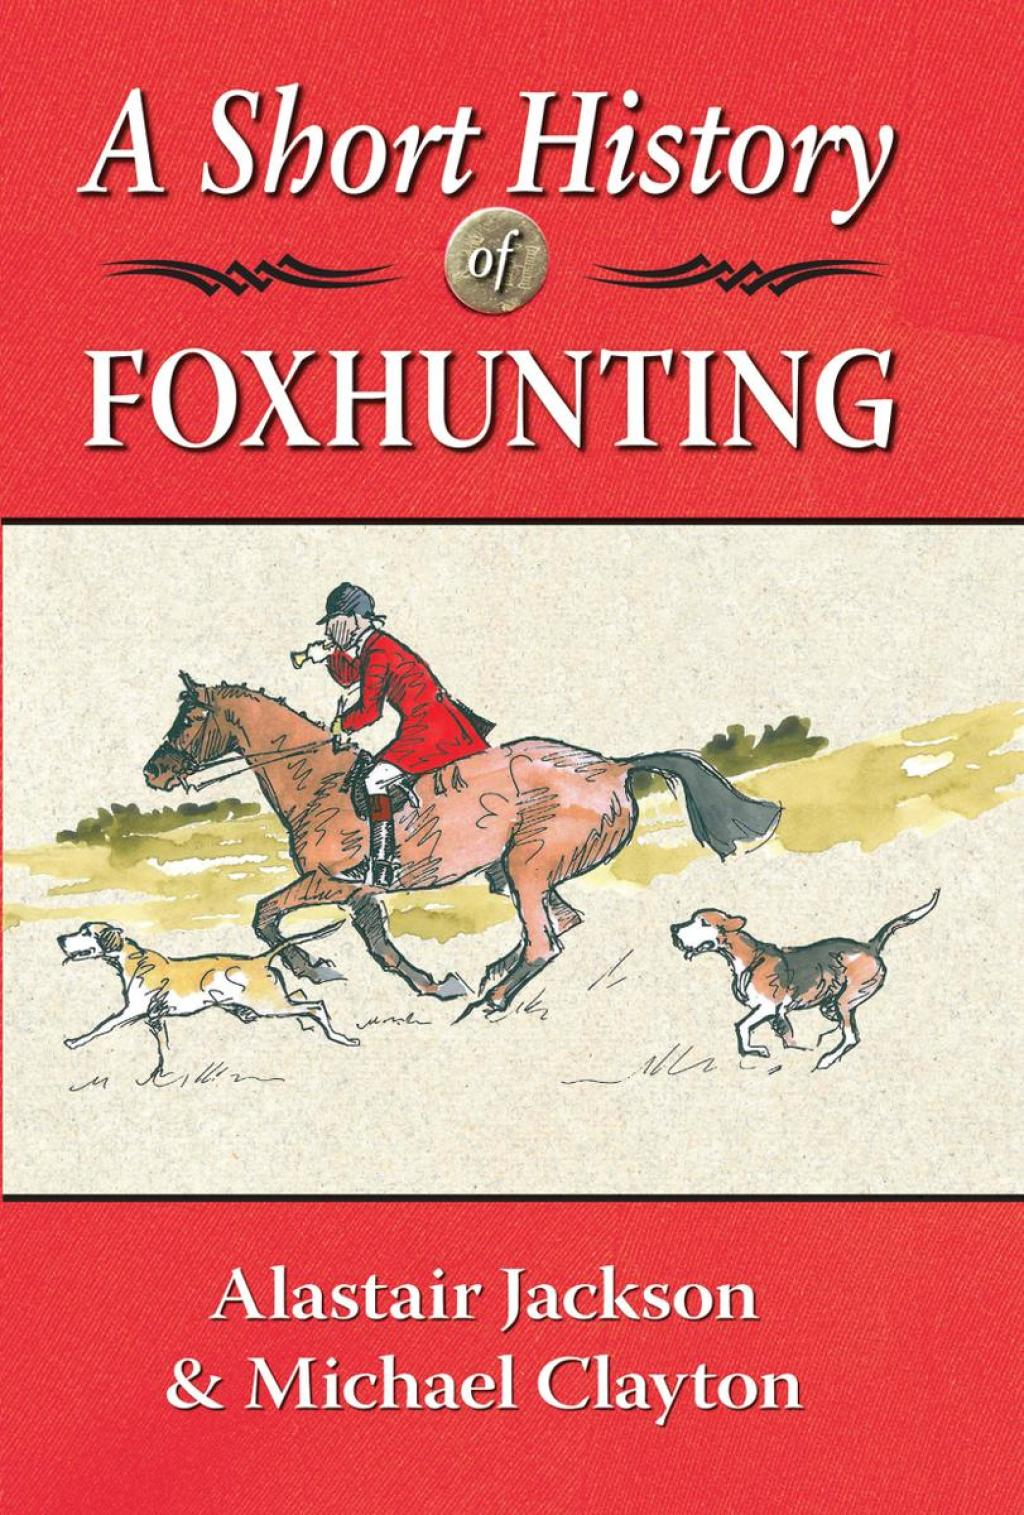 A Short History of Foxhunting (ebook) eBooks